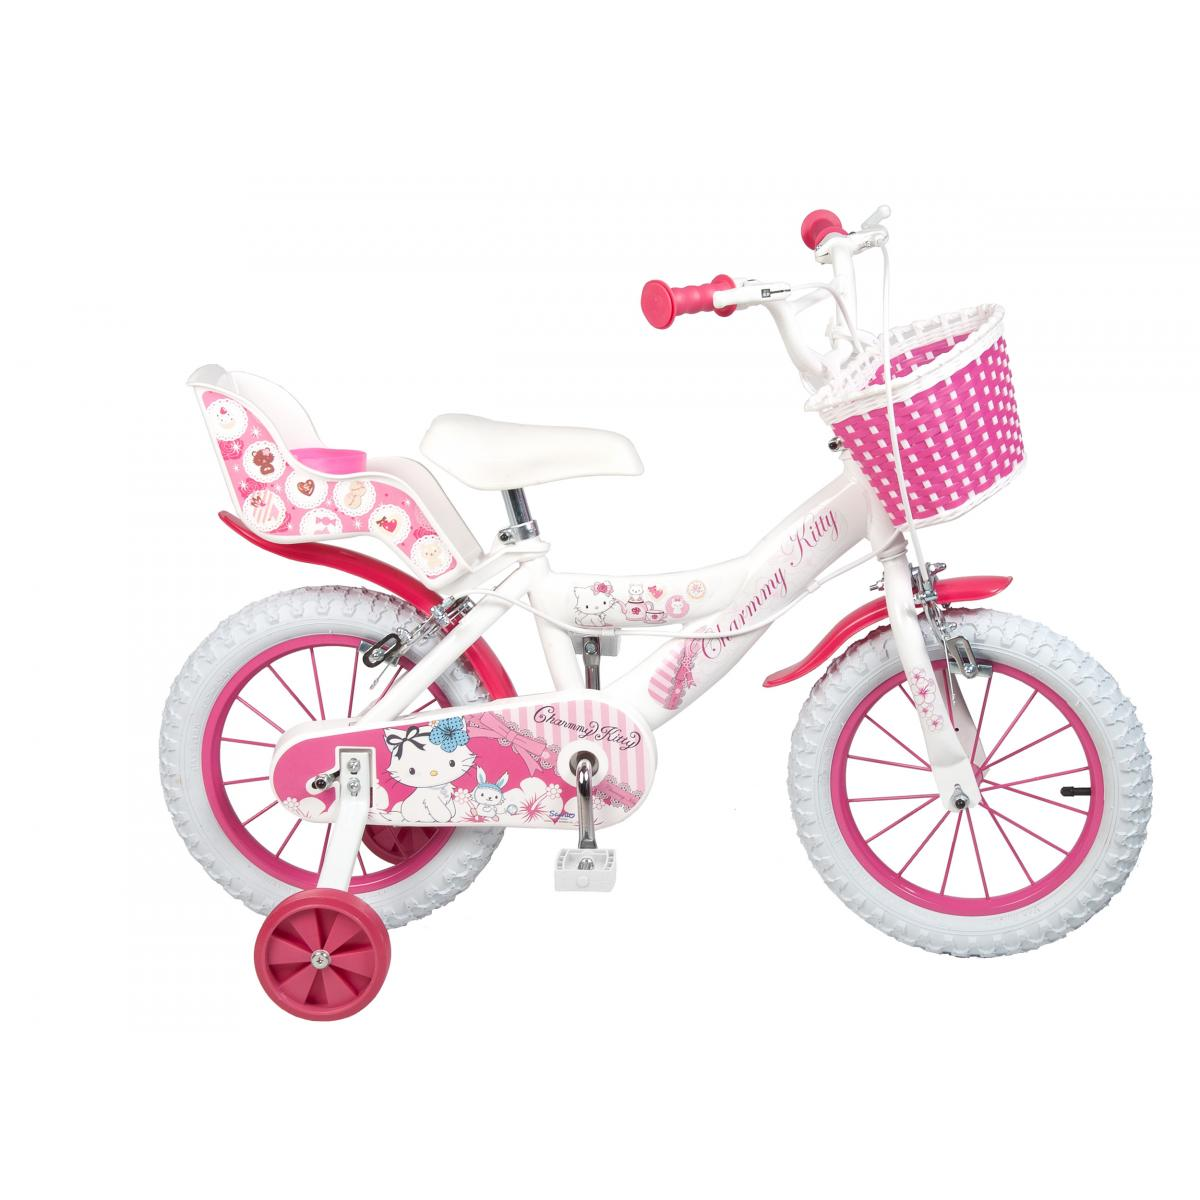 charmmy kitty kinderfahrrad 12 14 16 zoll kinder m dchen fahrrad mit puppensitz ebay. Black Bedroom Furniture Sets. Home Design Ideas